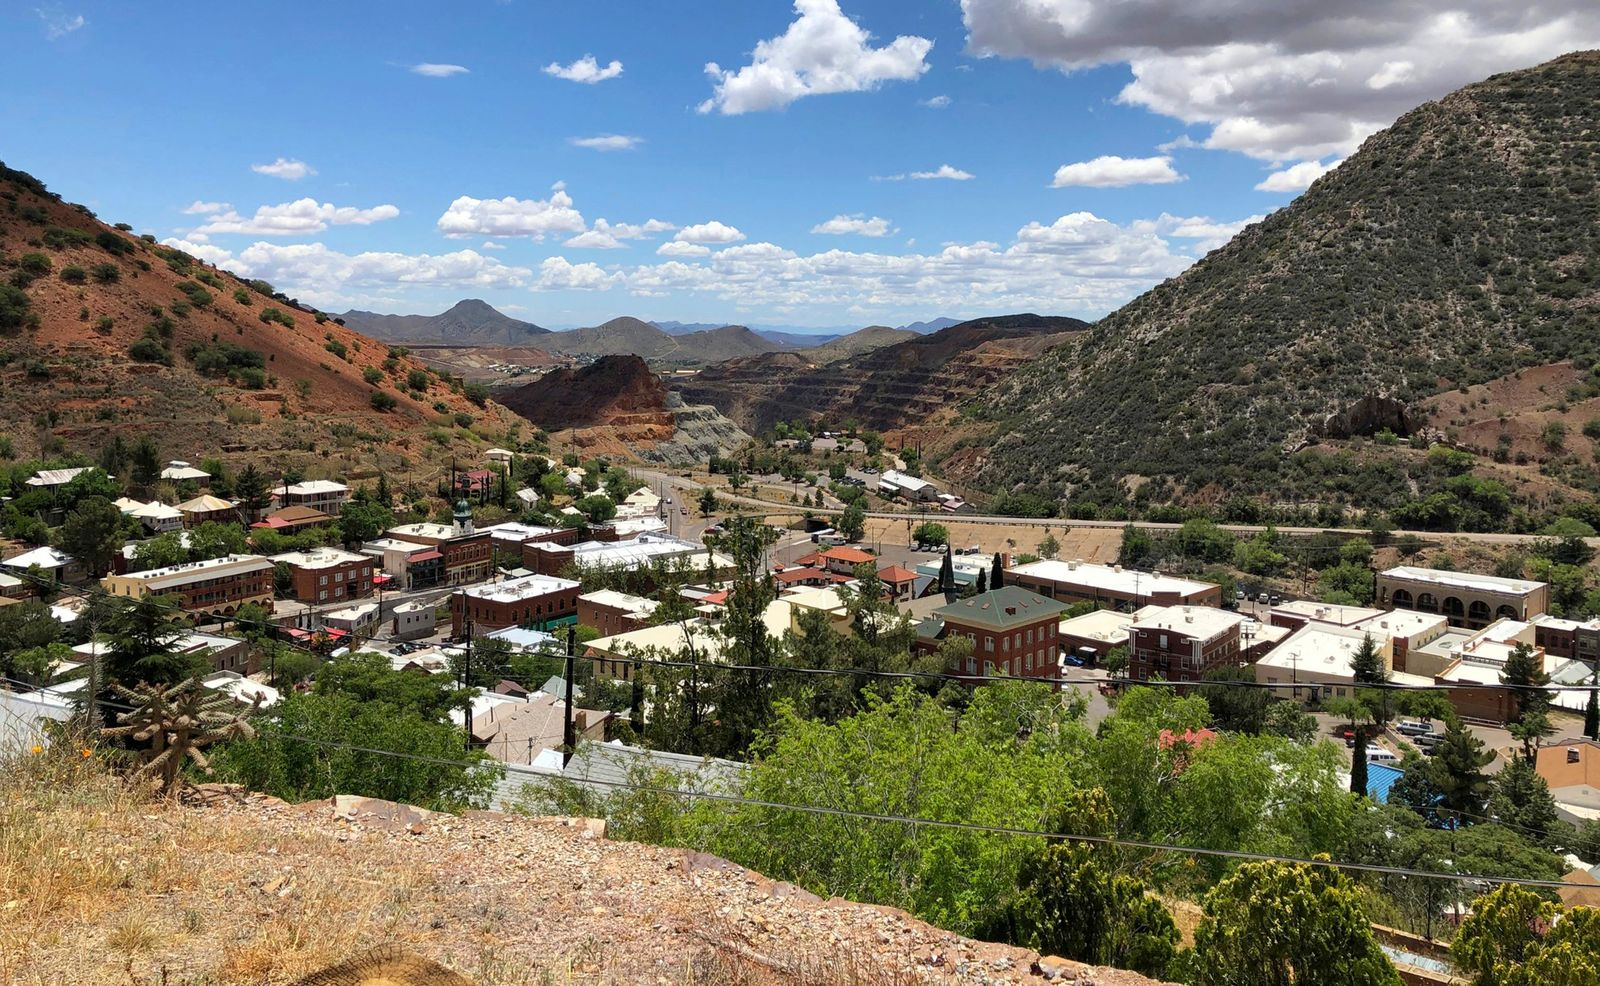 "This May 23, 2019 photo shows modern-day Bisbee, Ariz., with itslarge open-pit copper mine in the background, the subject of ""Bisbee '17,"" a story of how some 1,200 miners, most of them immigrants, were pulled violently from their homes in Bisbee by a private police force and put on cattle cars for deportation to a desolate area of New Mexico in 1917. (AP Photo/Anita Snow)"